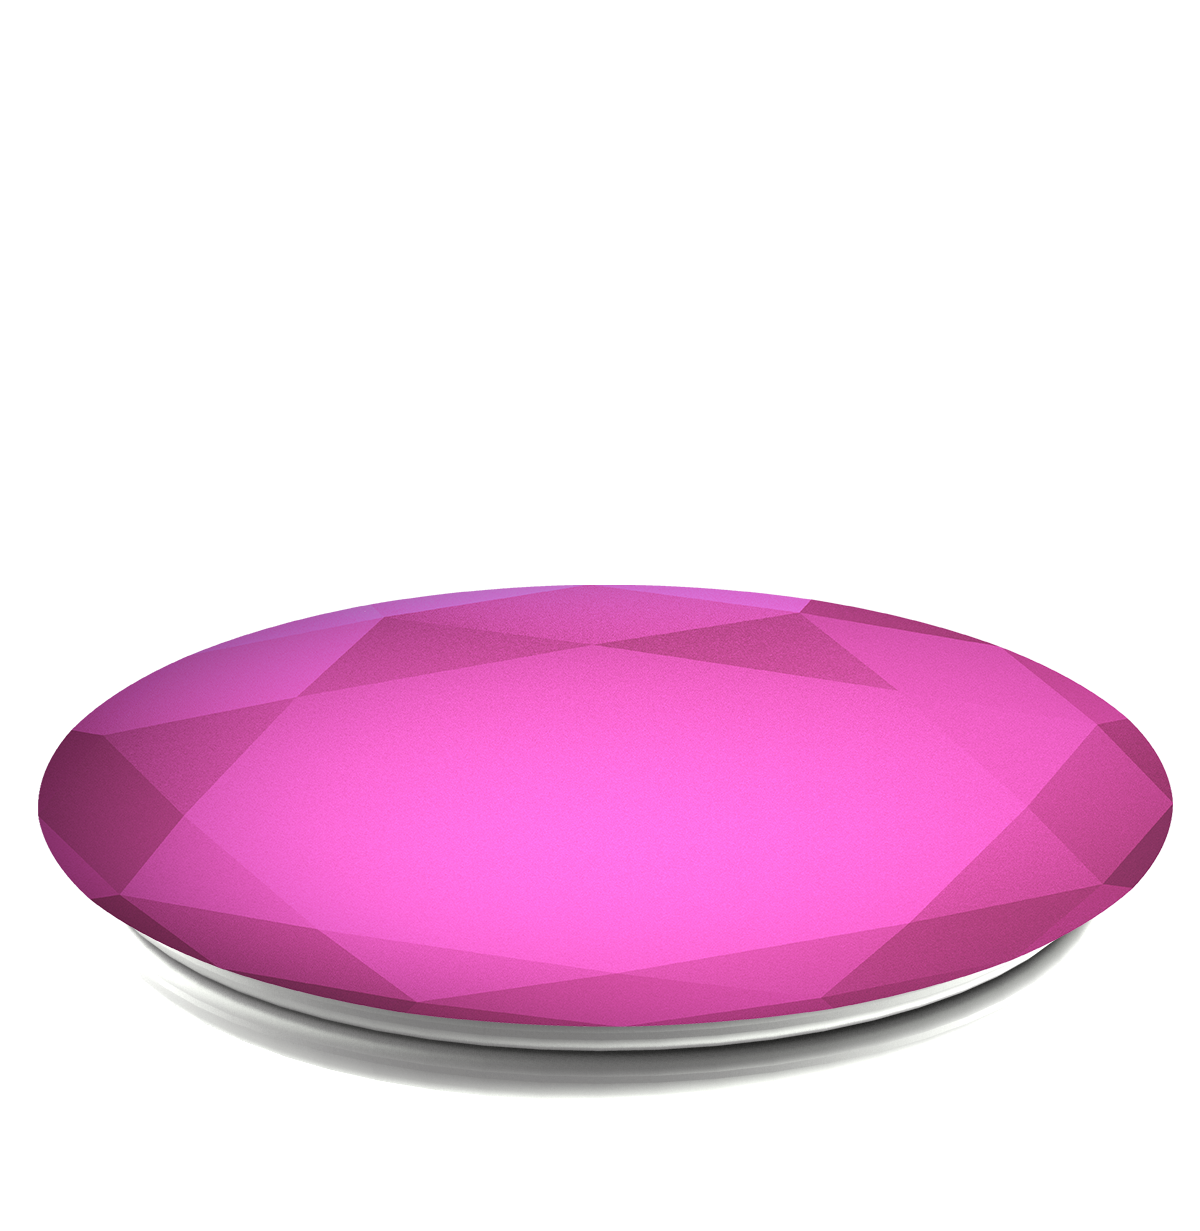 PopSockets Grip Diamond Metallic Fuchsia, PopSockets